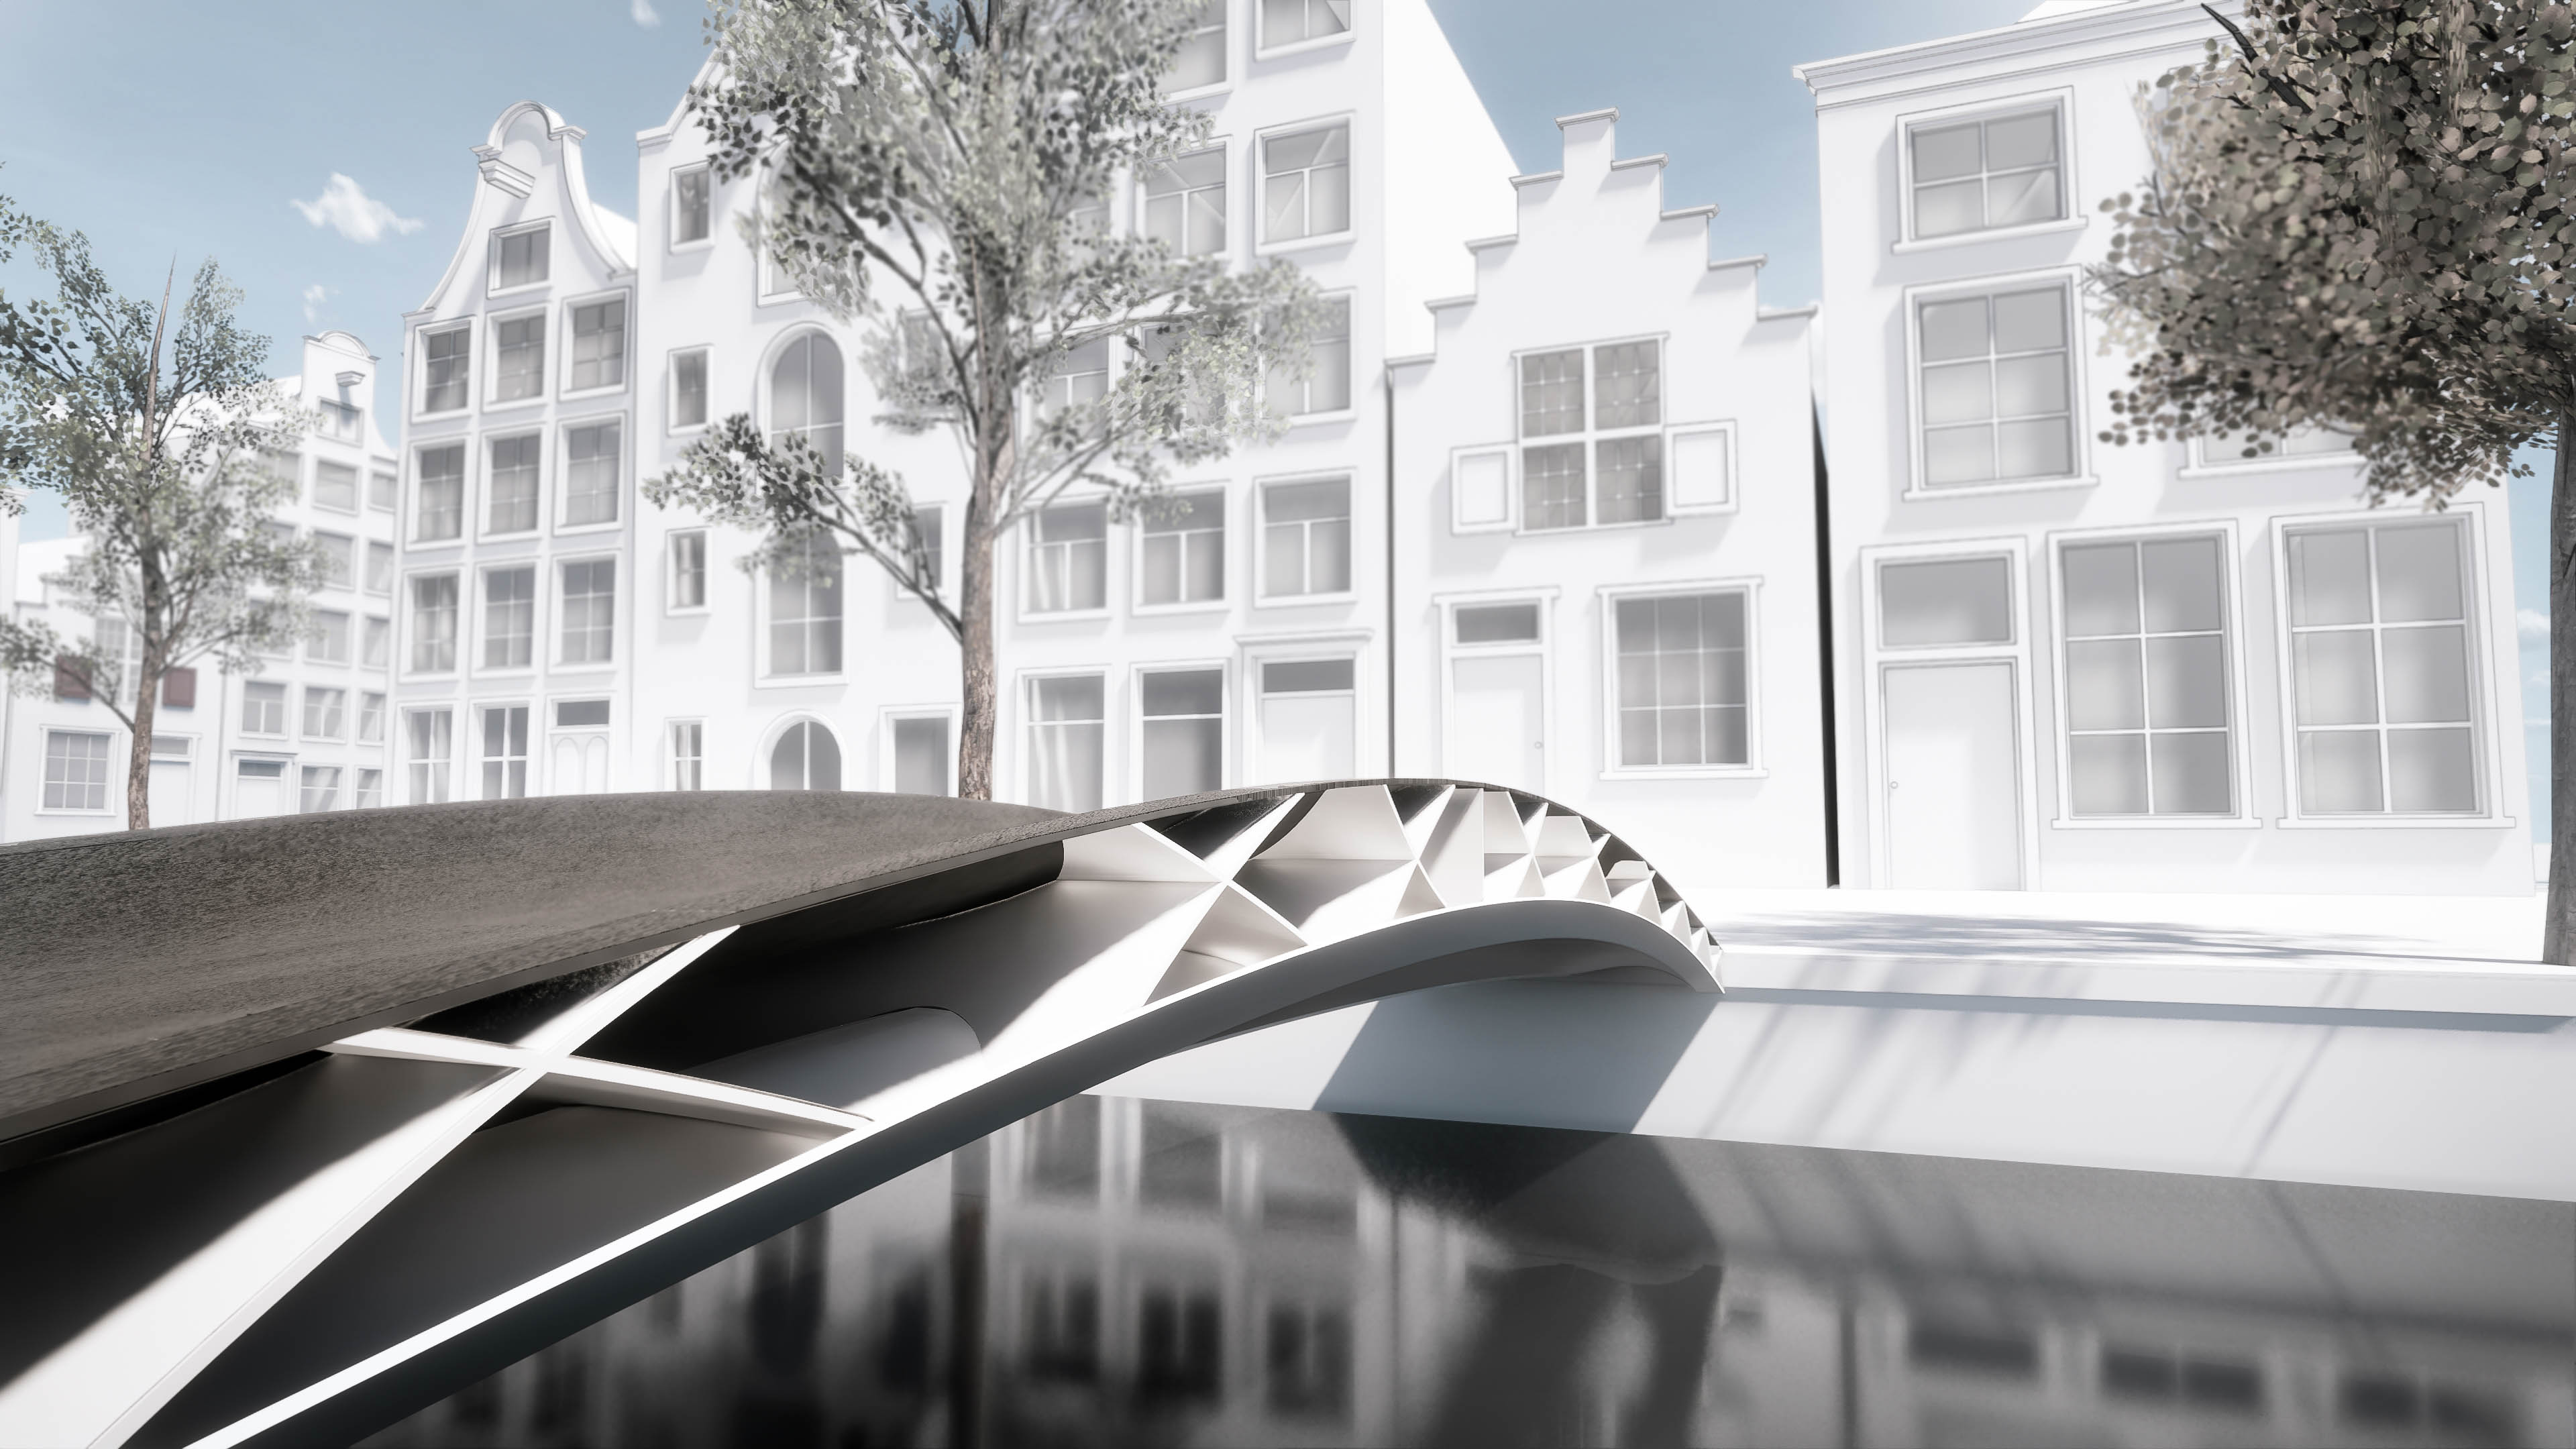 Rendering of what the 3D printed bridge could look like. Image via DSM.